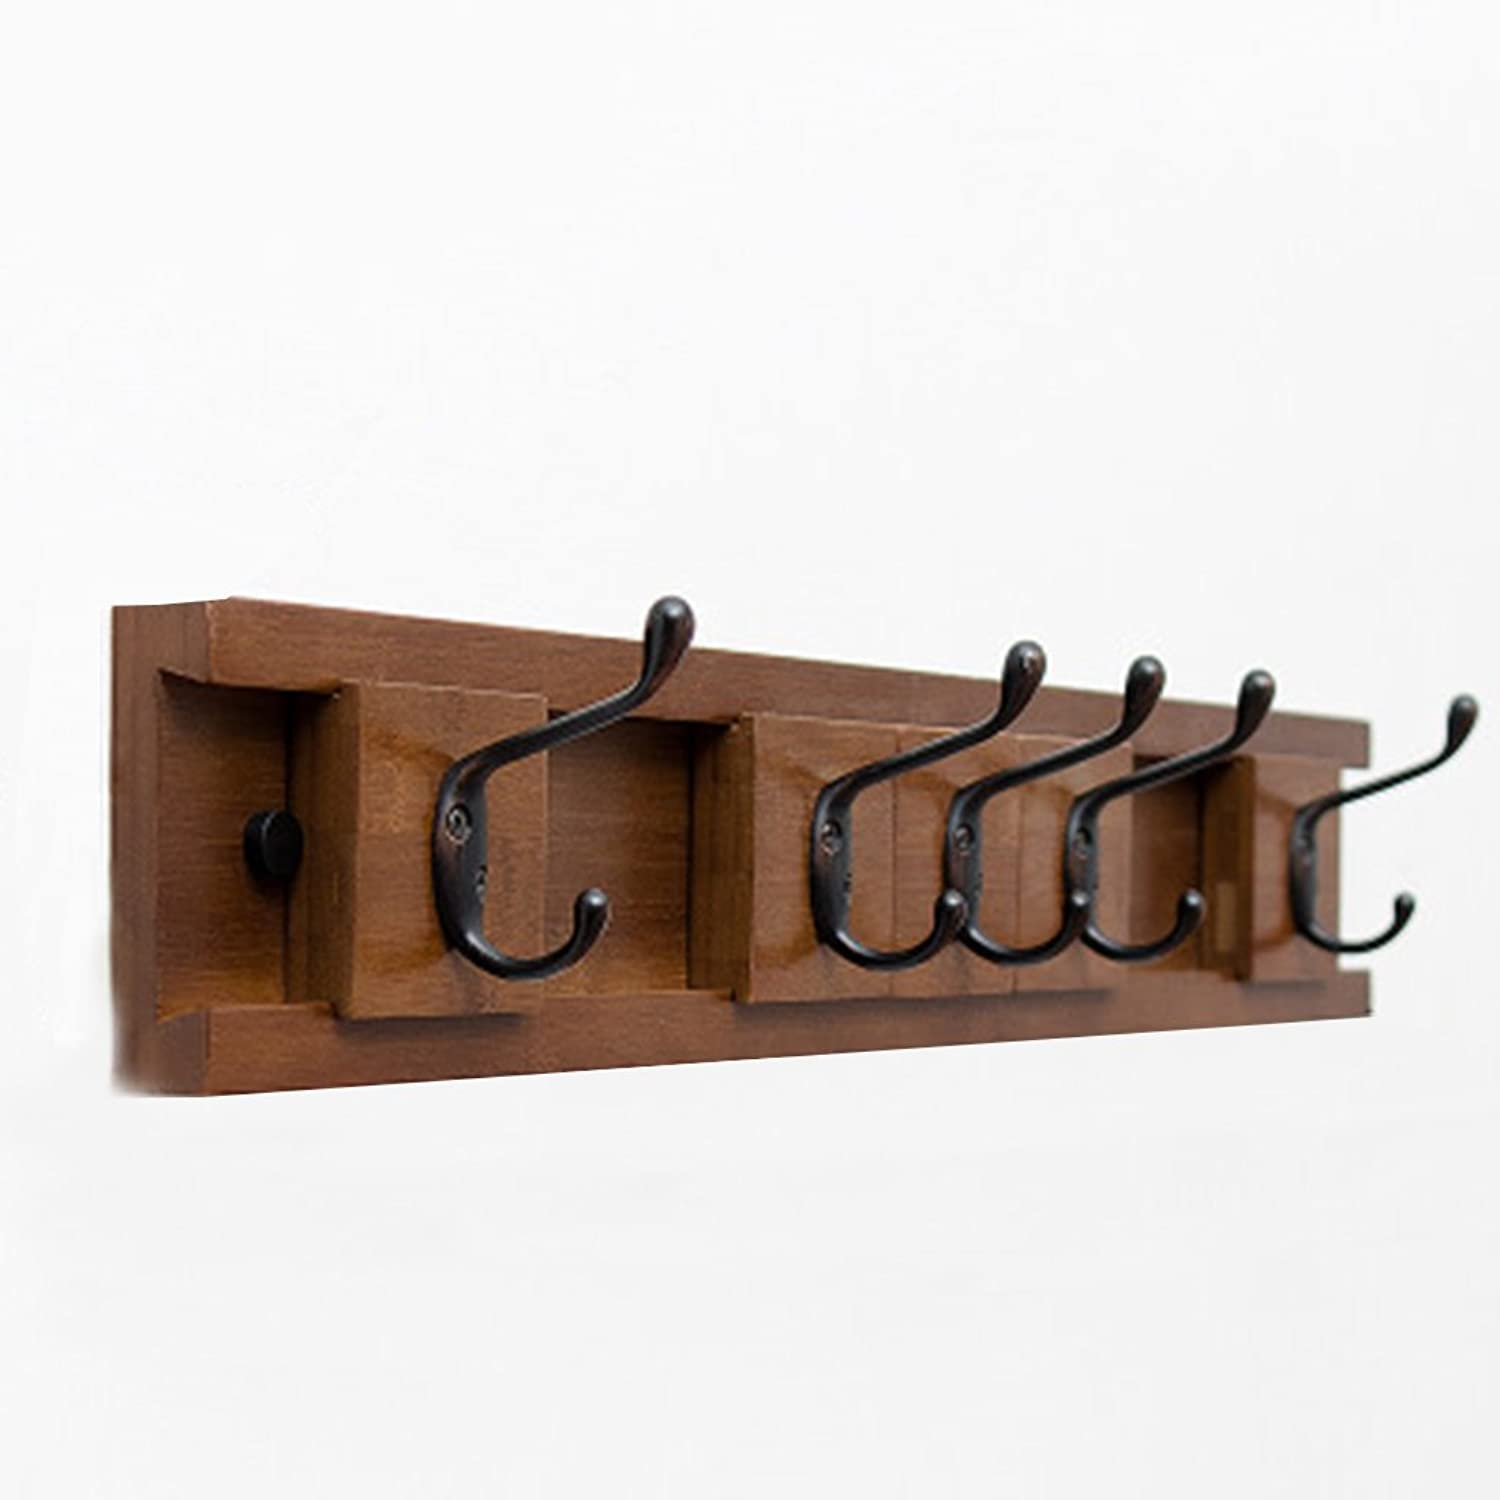 Coat Rack, Wooden Hook On The Wall Behind The Door Nordic Solid Wood Corner Coat Rack Wall Hanger Bedroom 35.4  9.8  2.4cm Easy to Install (color    2, Size   61.1  9.8  2.4cm)